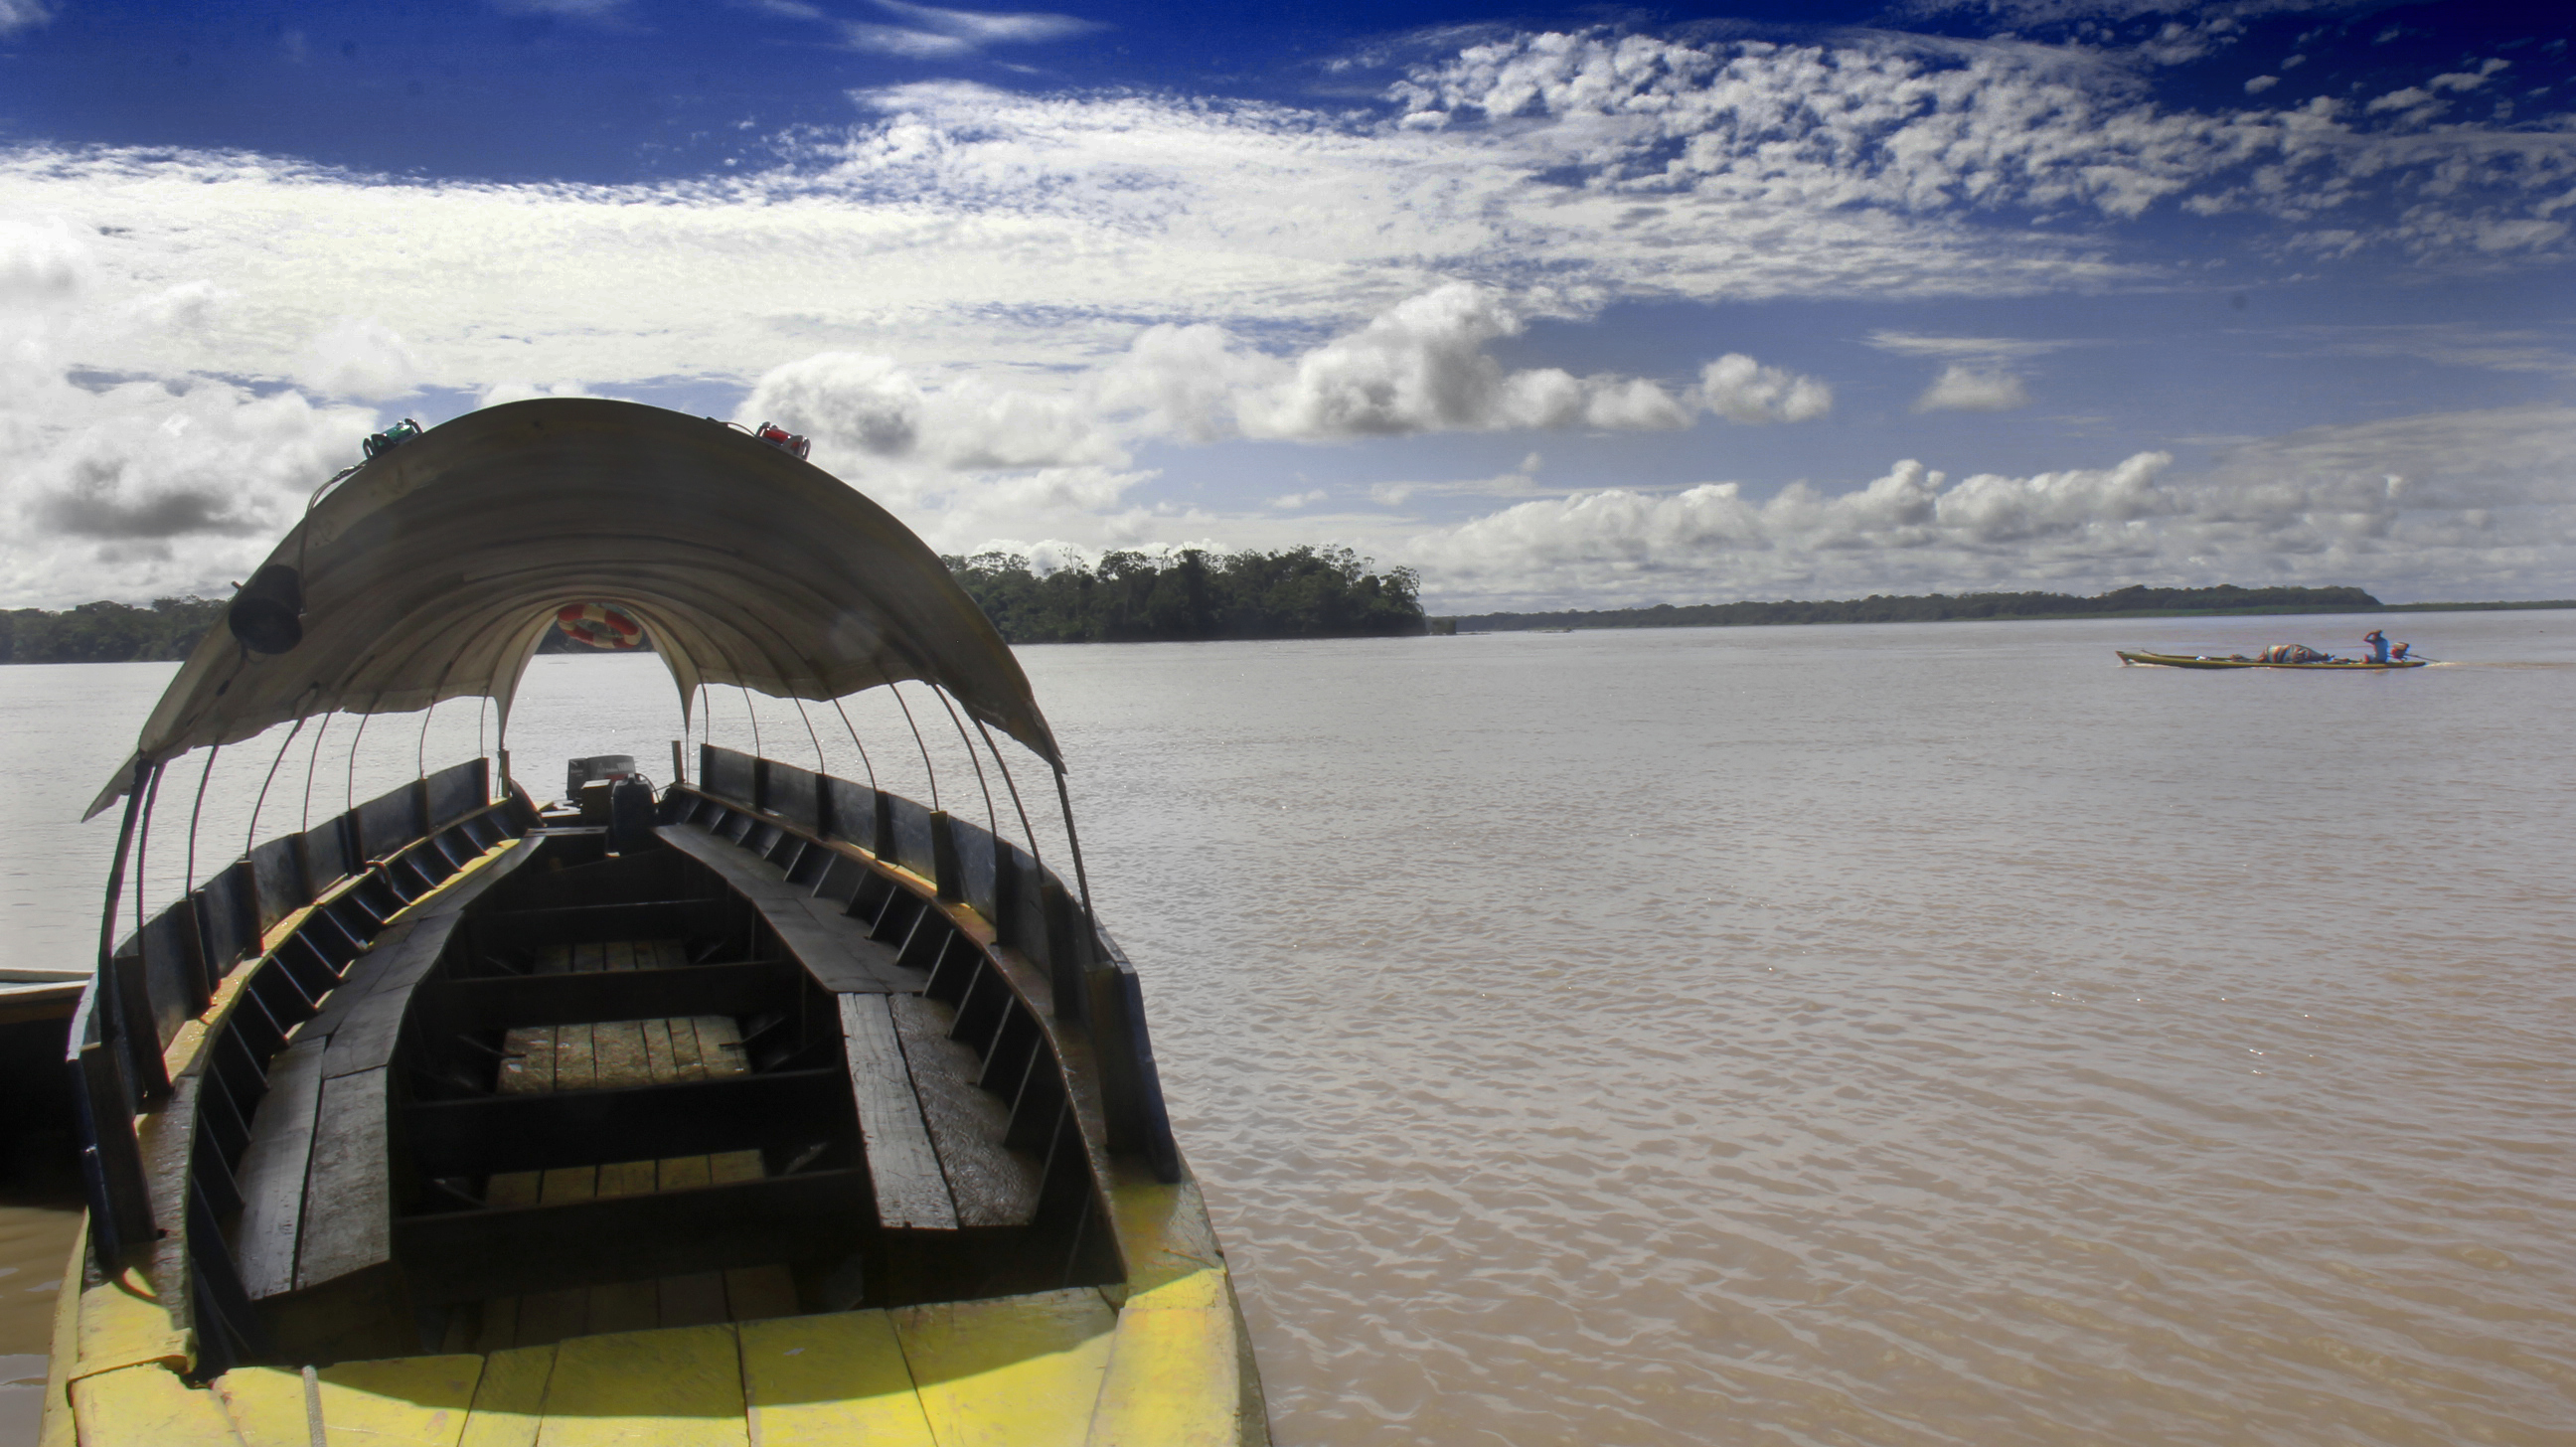 Canoa in Amazon River